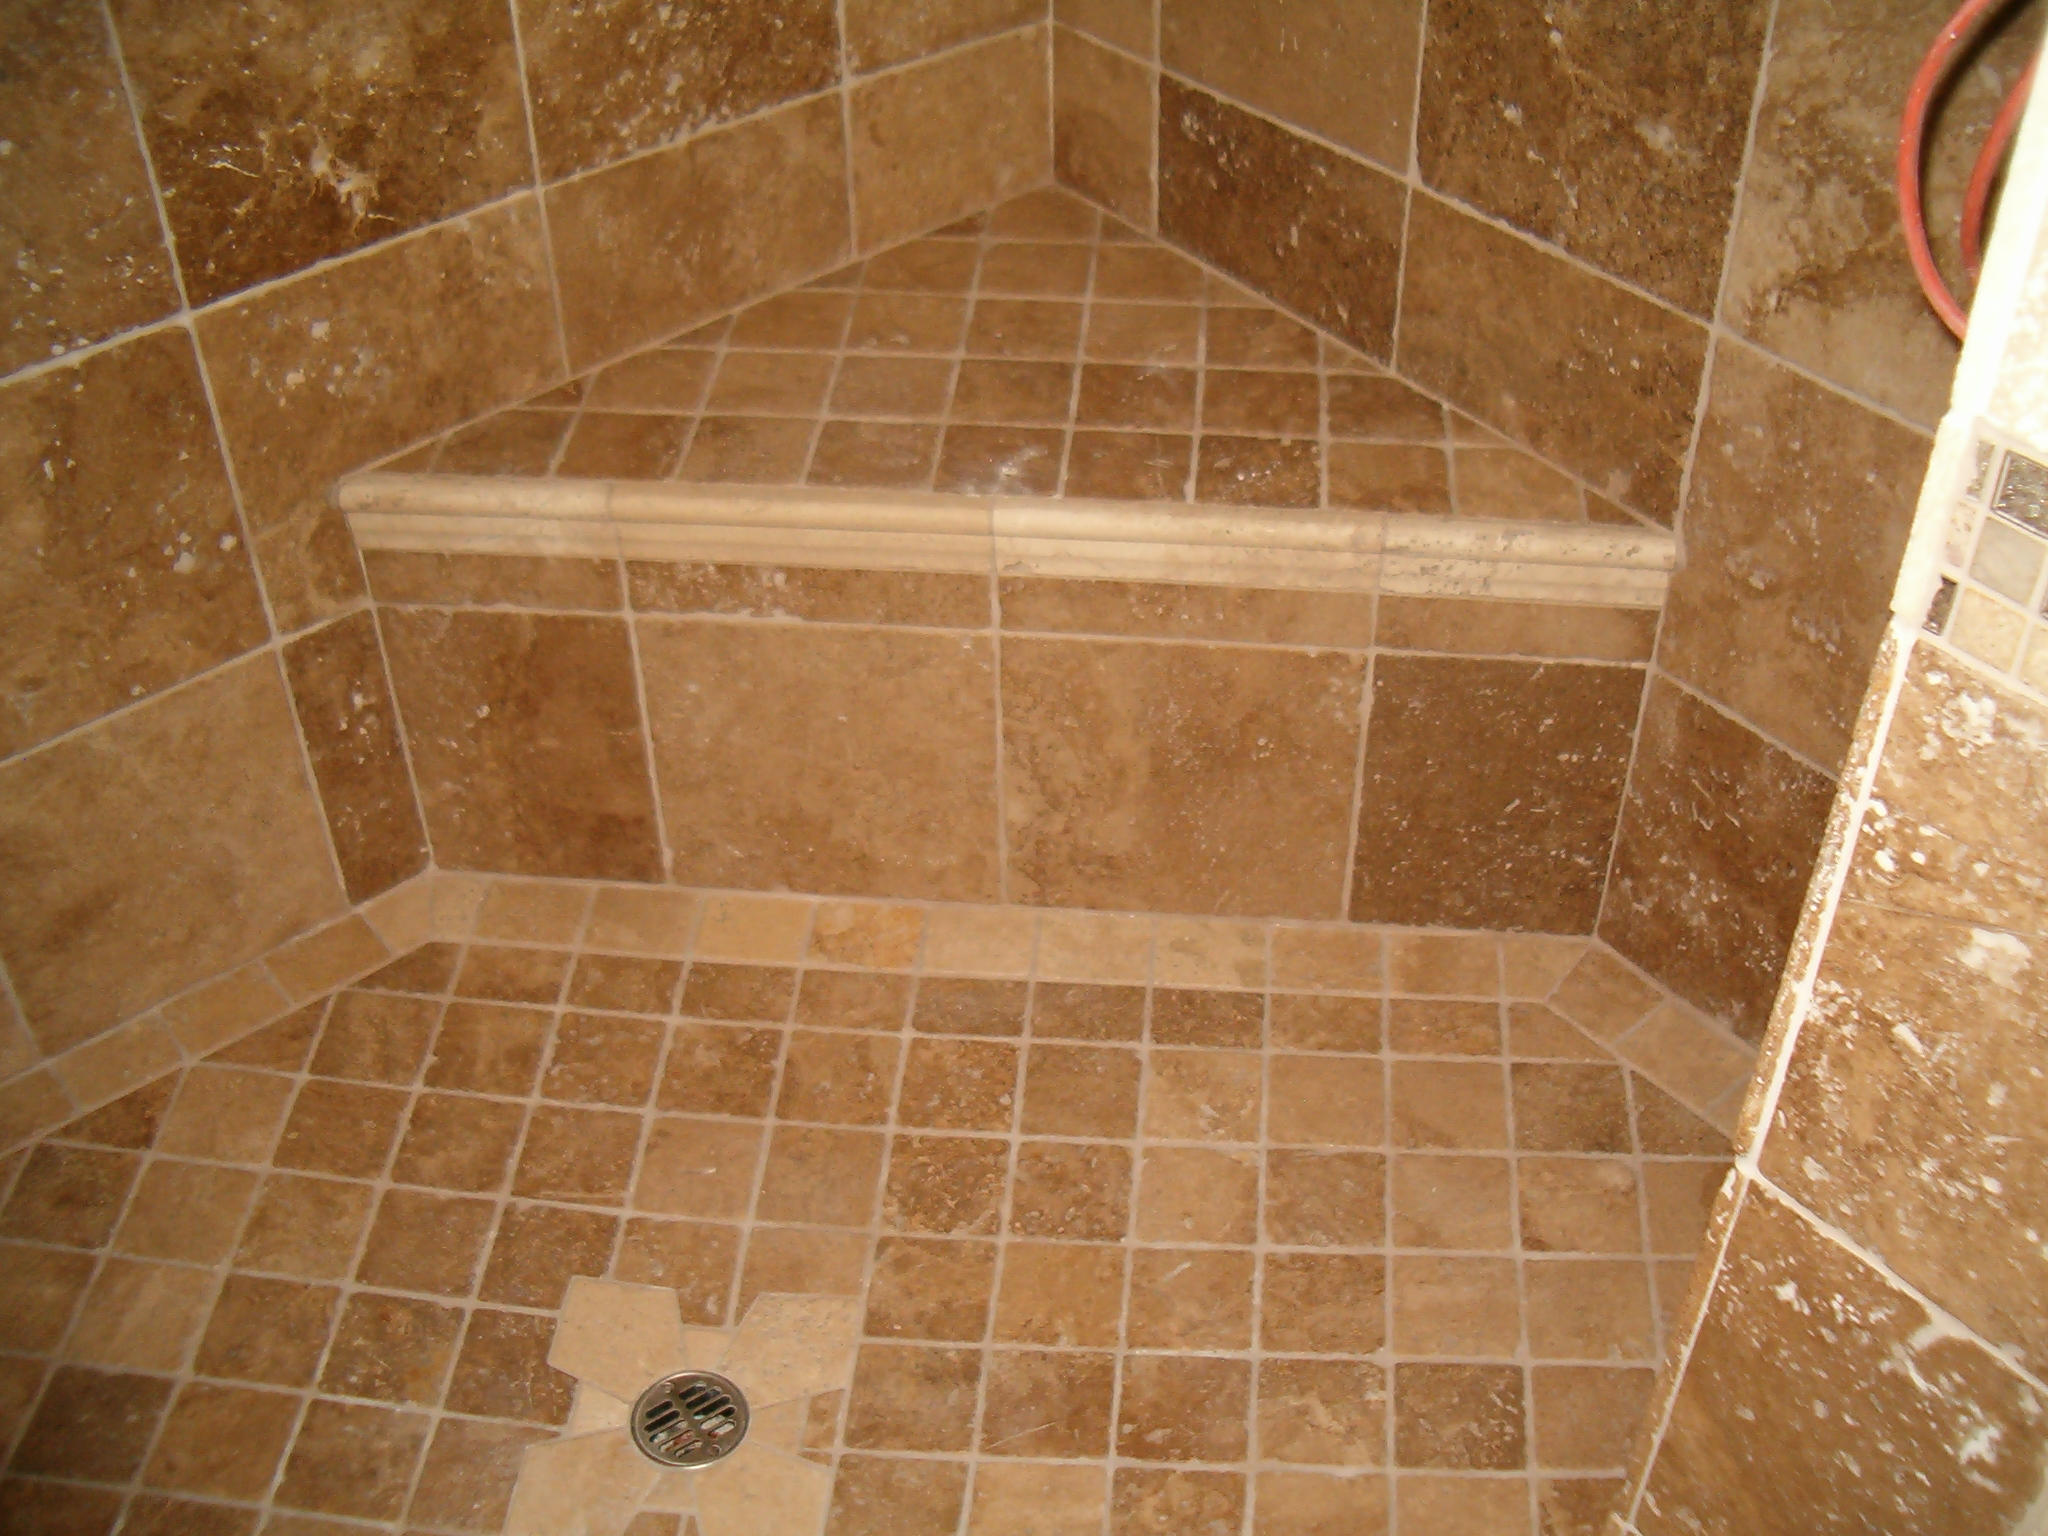 Shower anatomy for Tile designs for bathroom